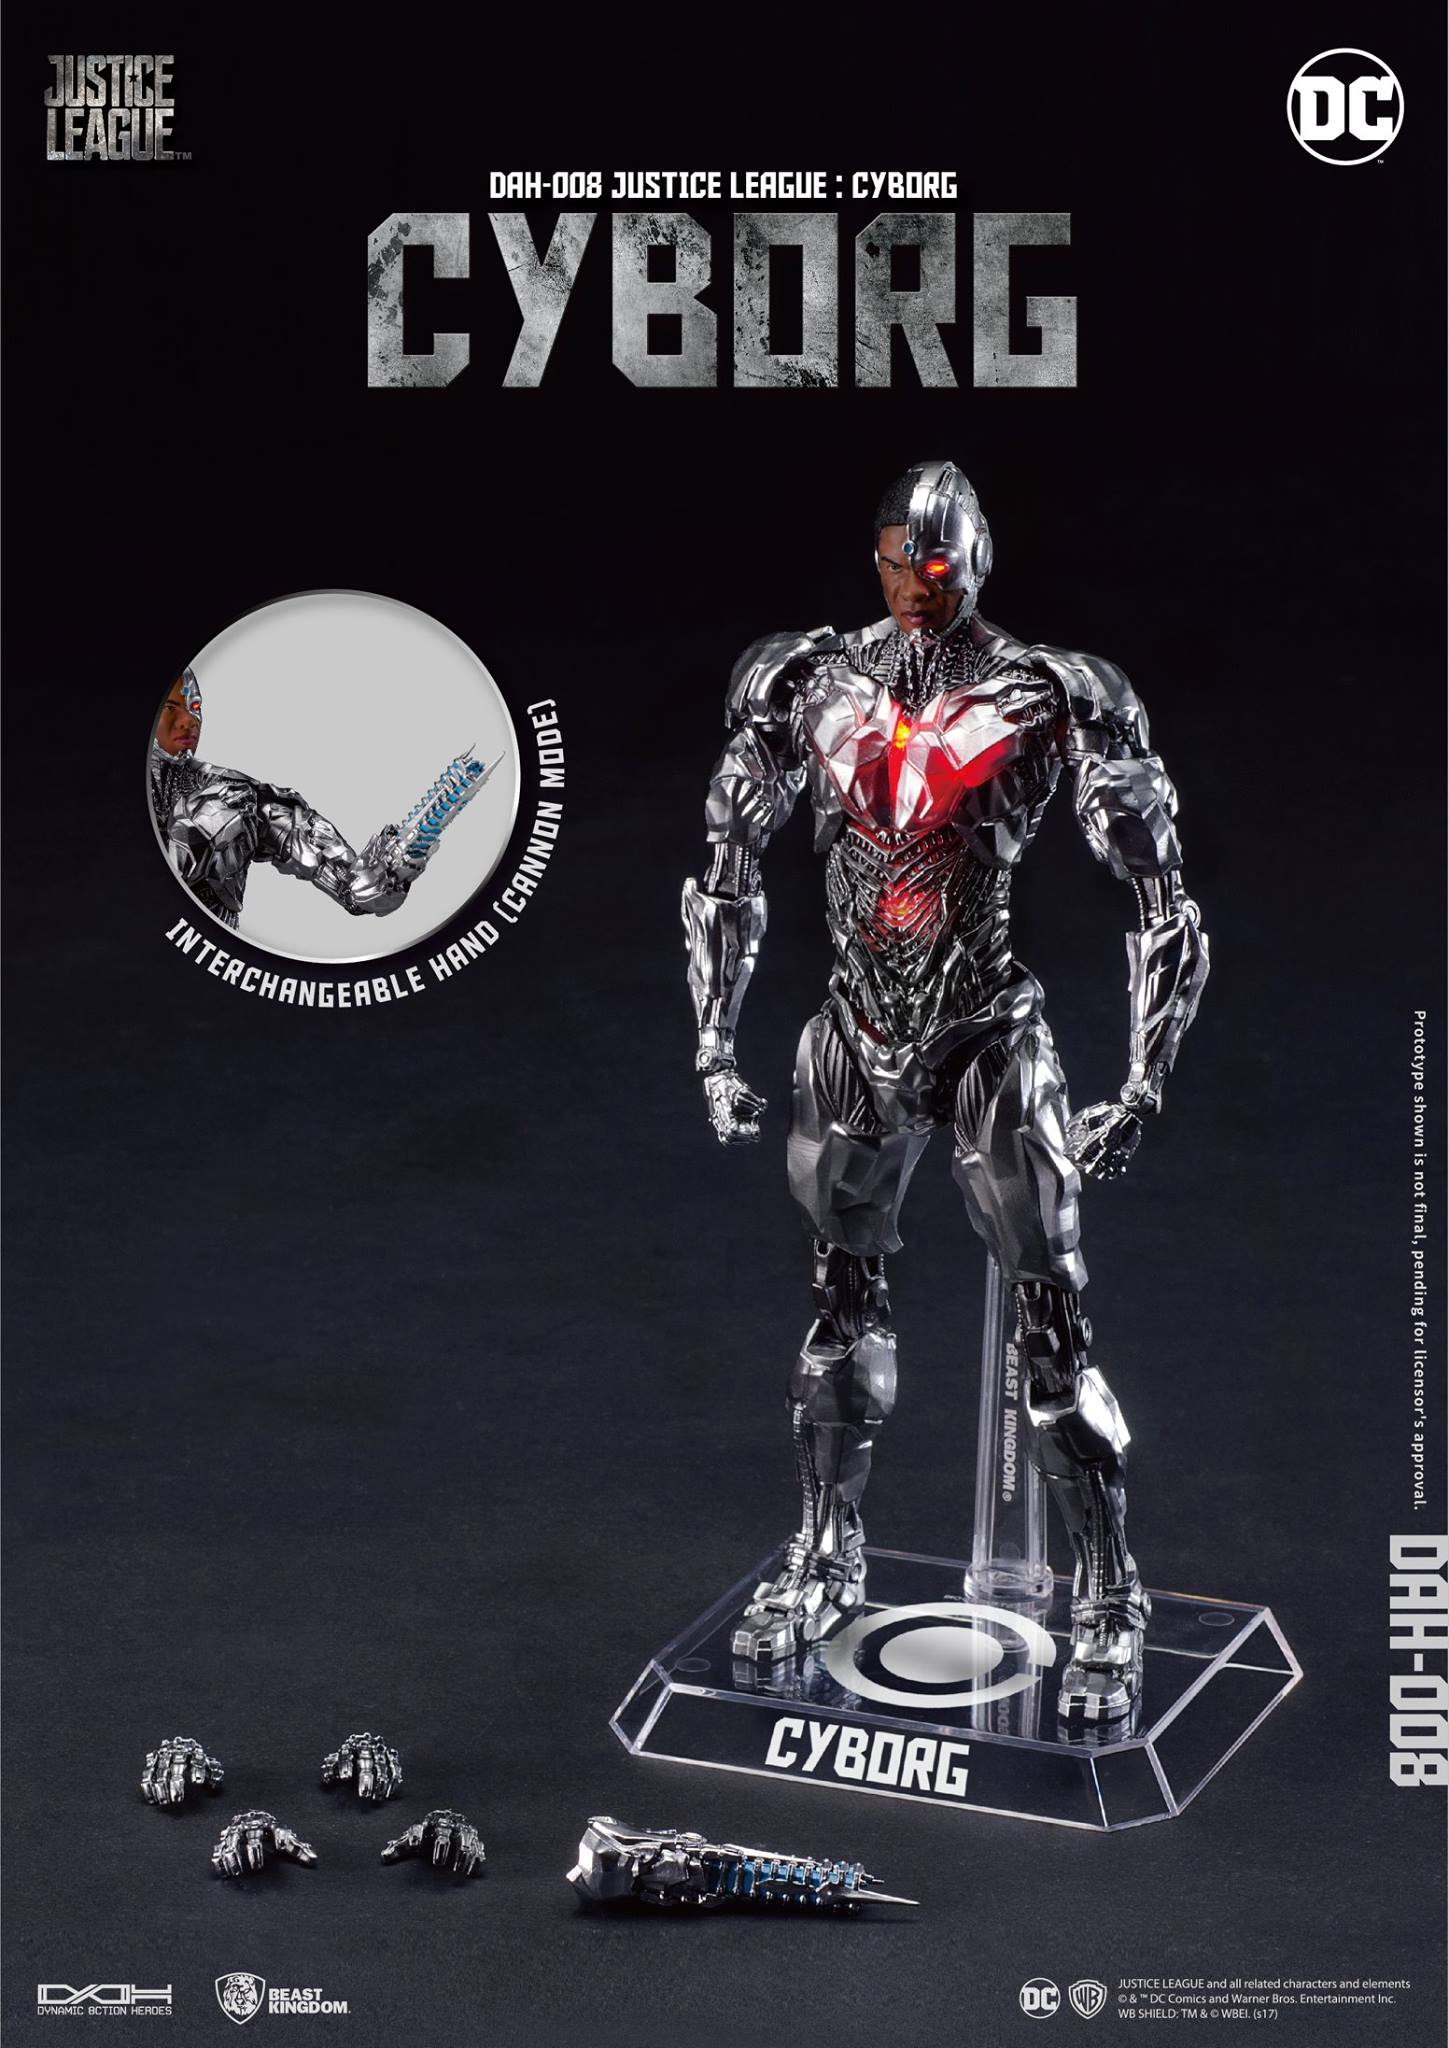 DAH-Justice-League-Cyborg-005